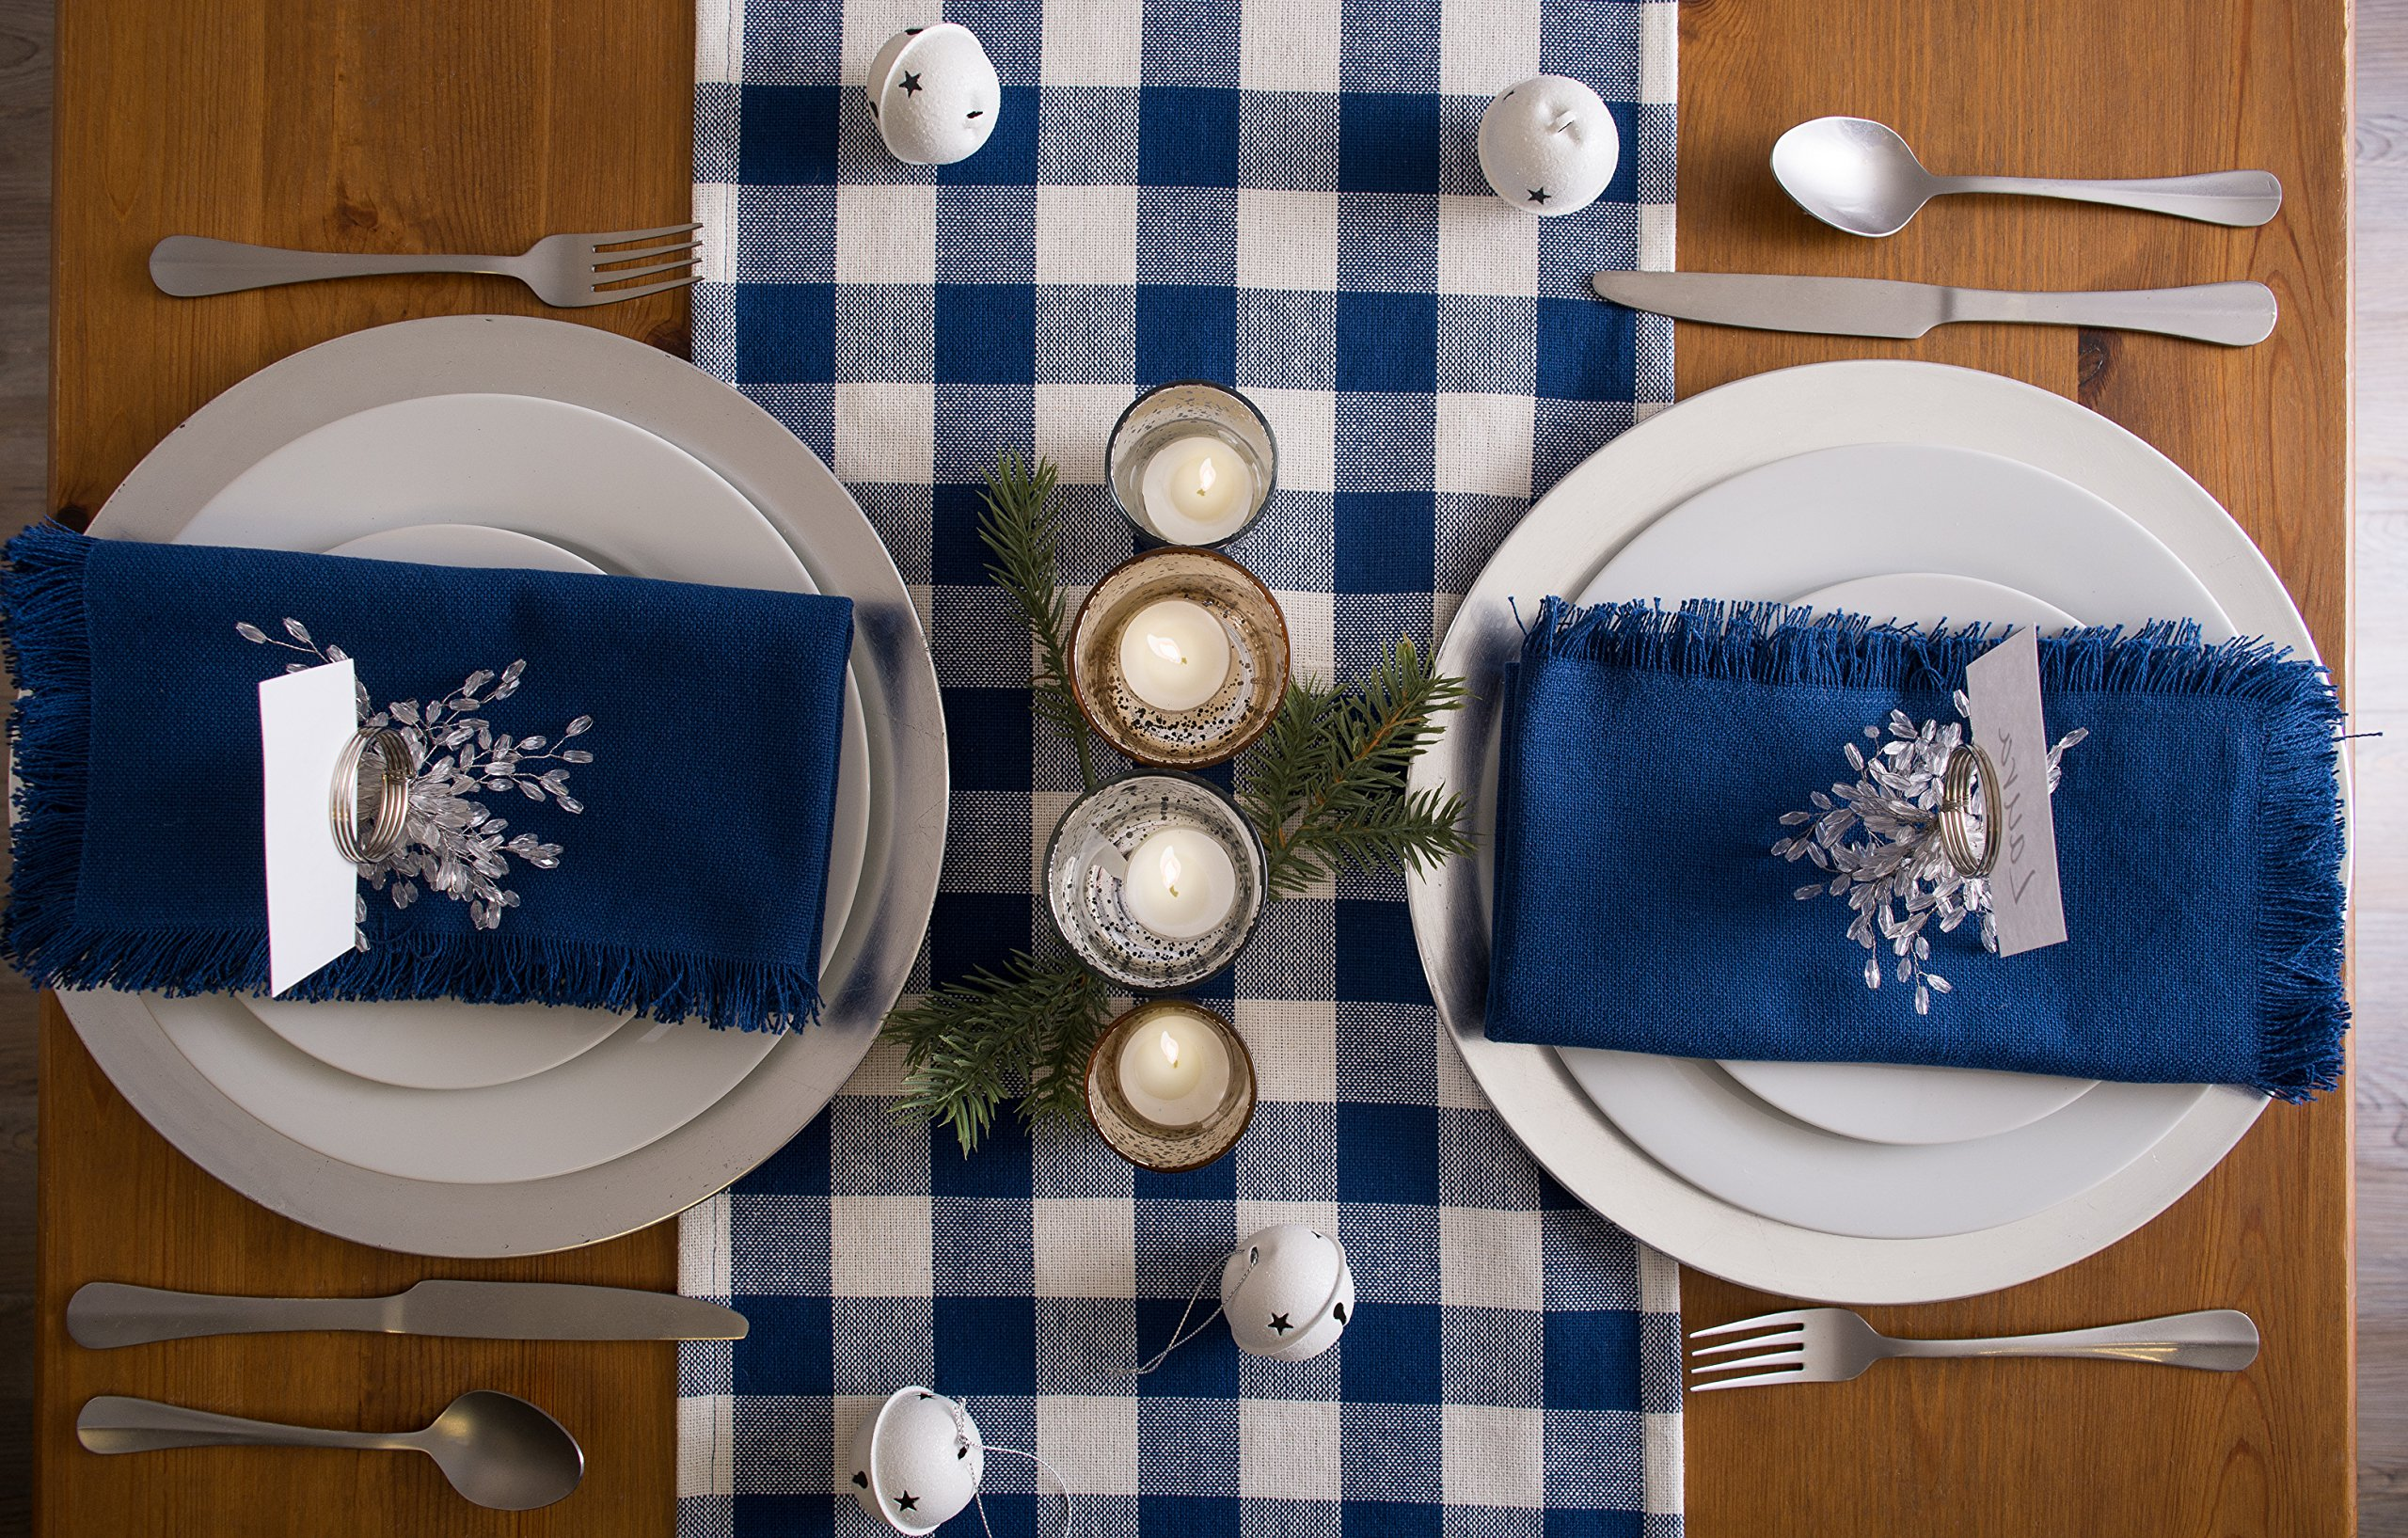 DII 100% Cotton, Oversized Basic Everyday Woven Heavyweight Napkin with Decorative Fringe for Place Settings, Family Dinners, BBQ, and Holidays (20x20'', Set of 6) Navy Blue Solid by DII (Image #9)